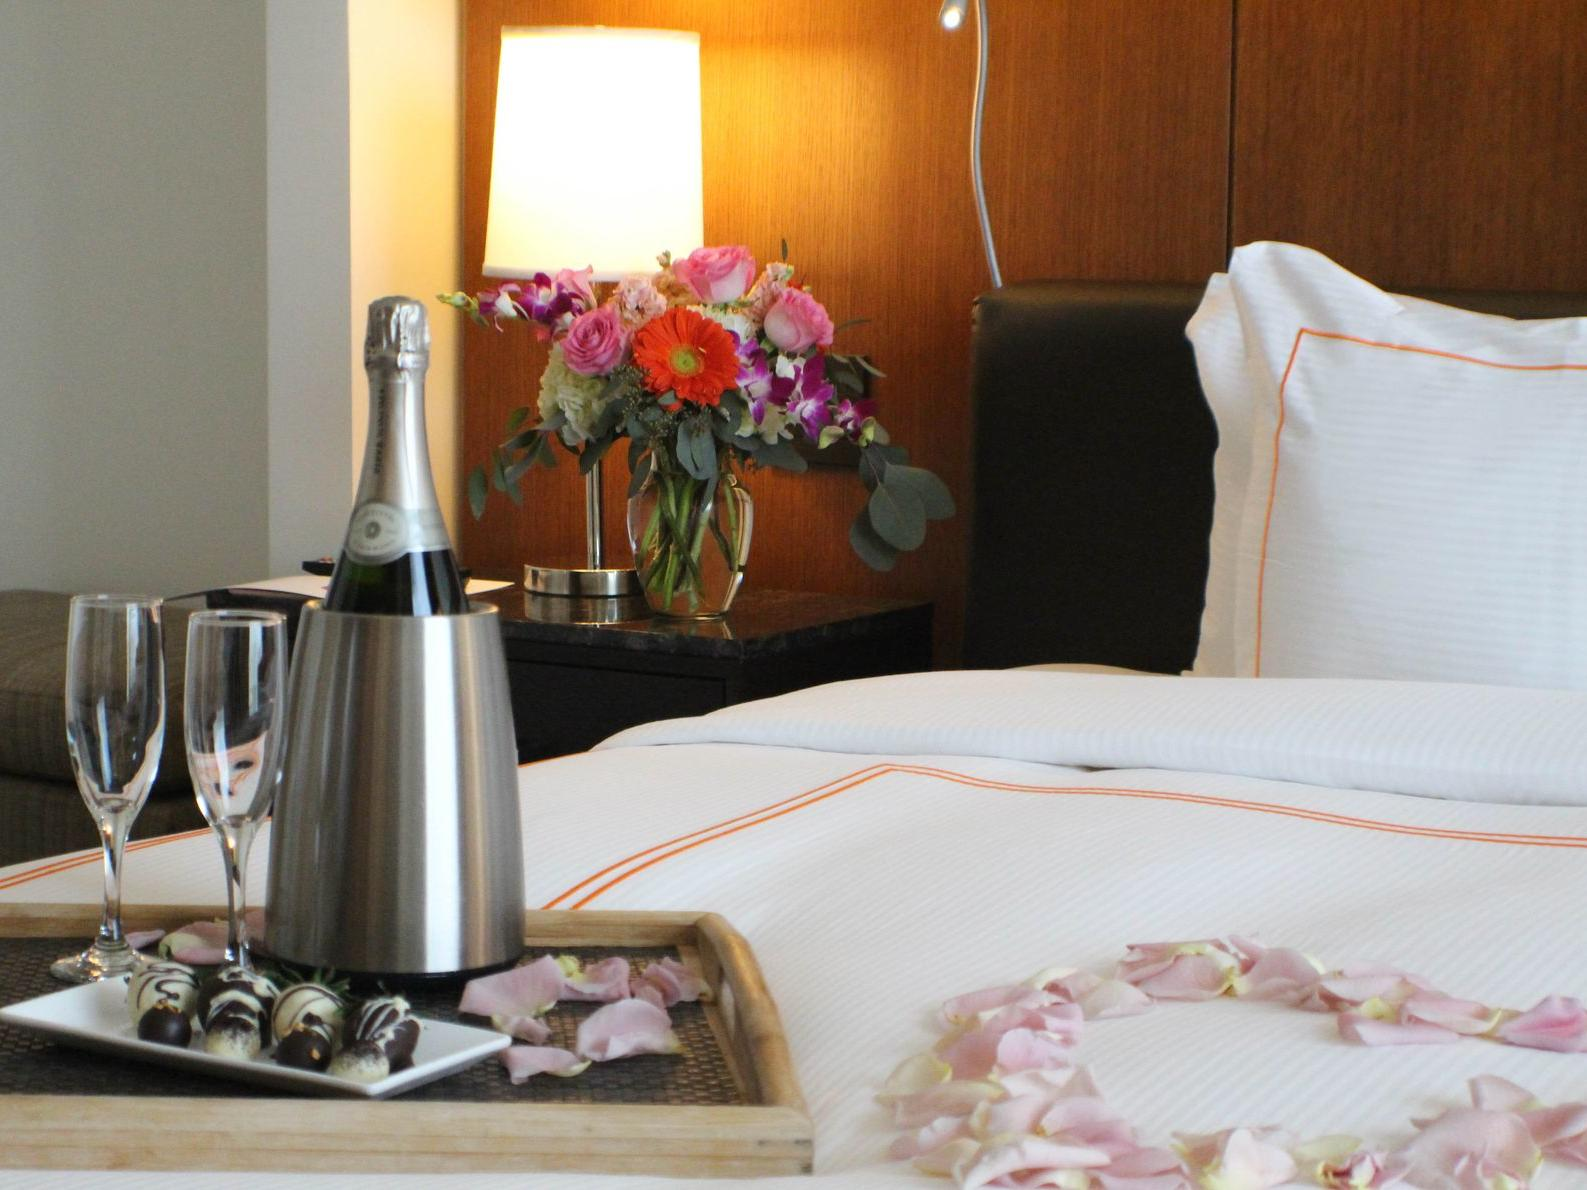 chilled champagne on a hotel bed